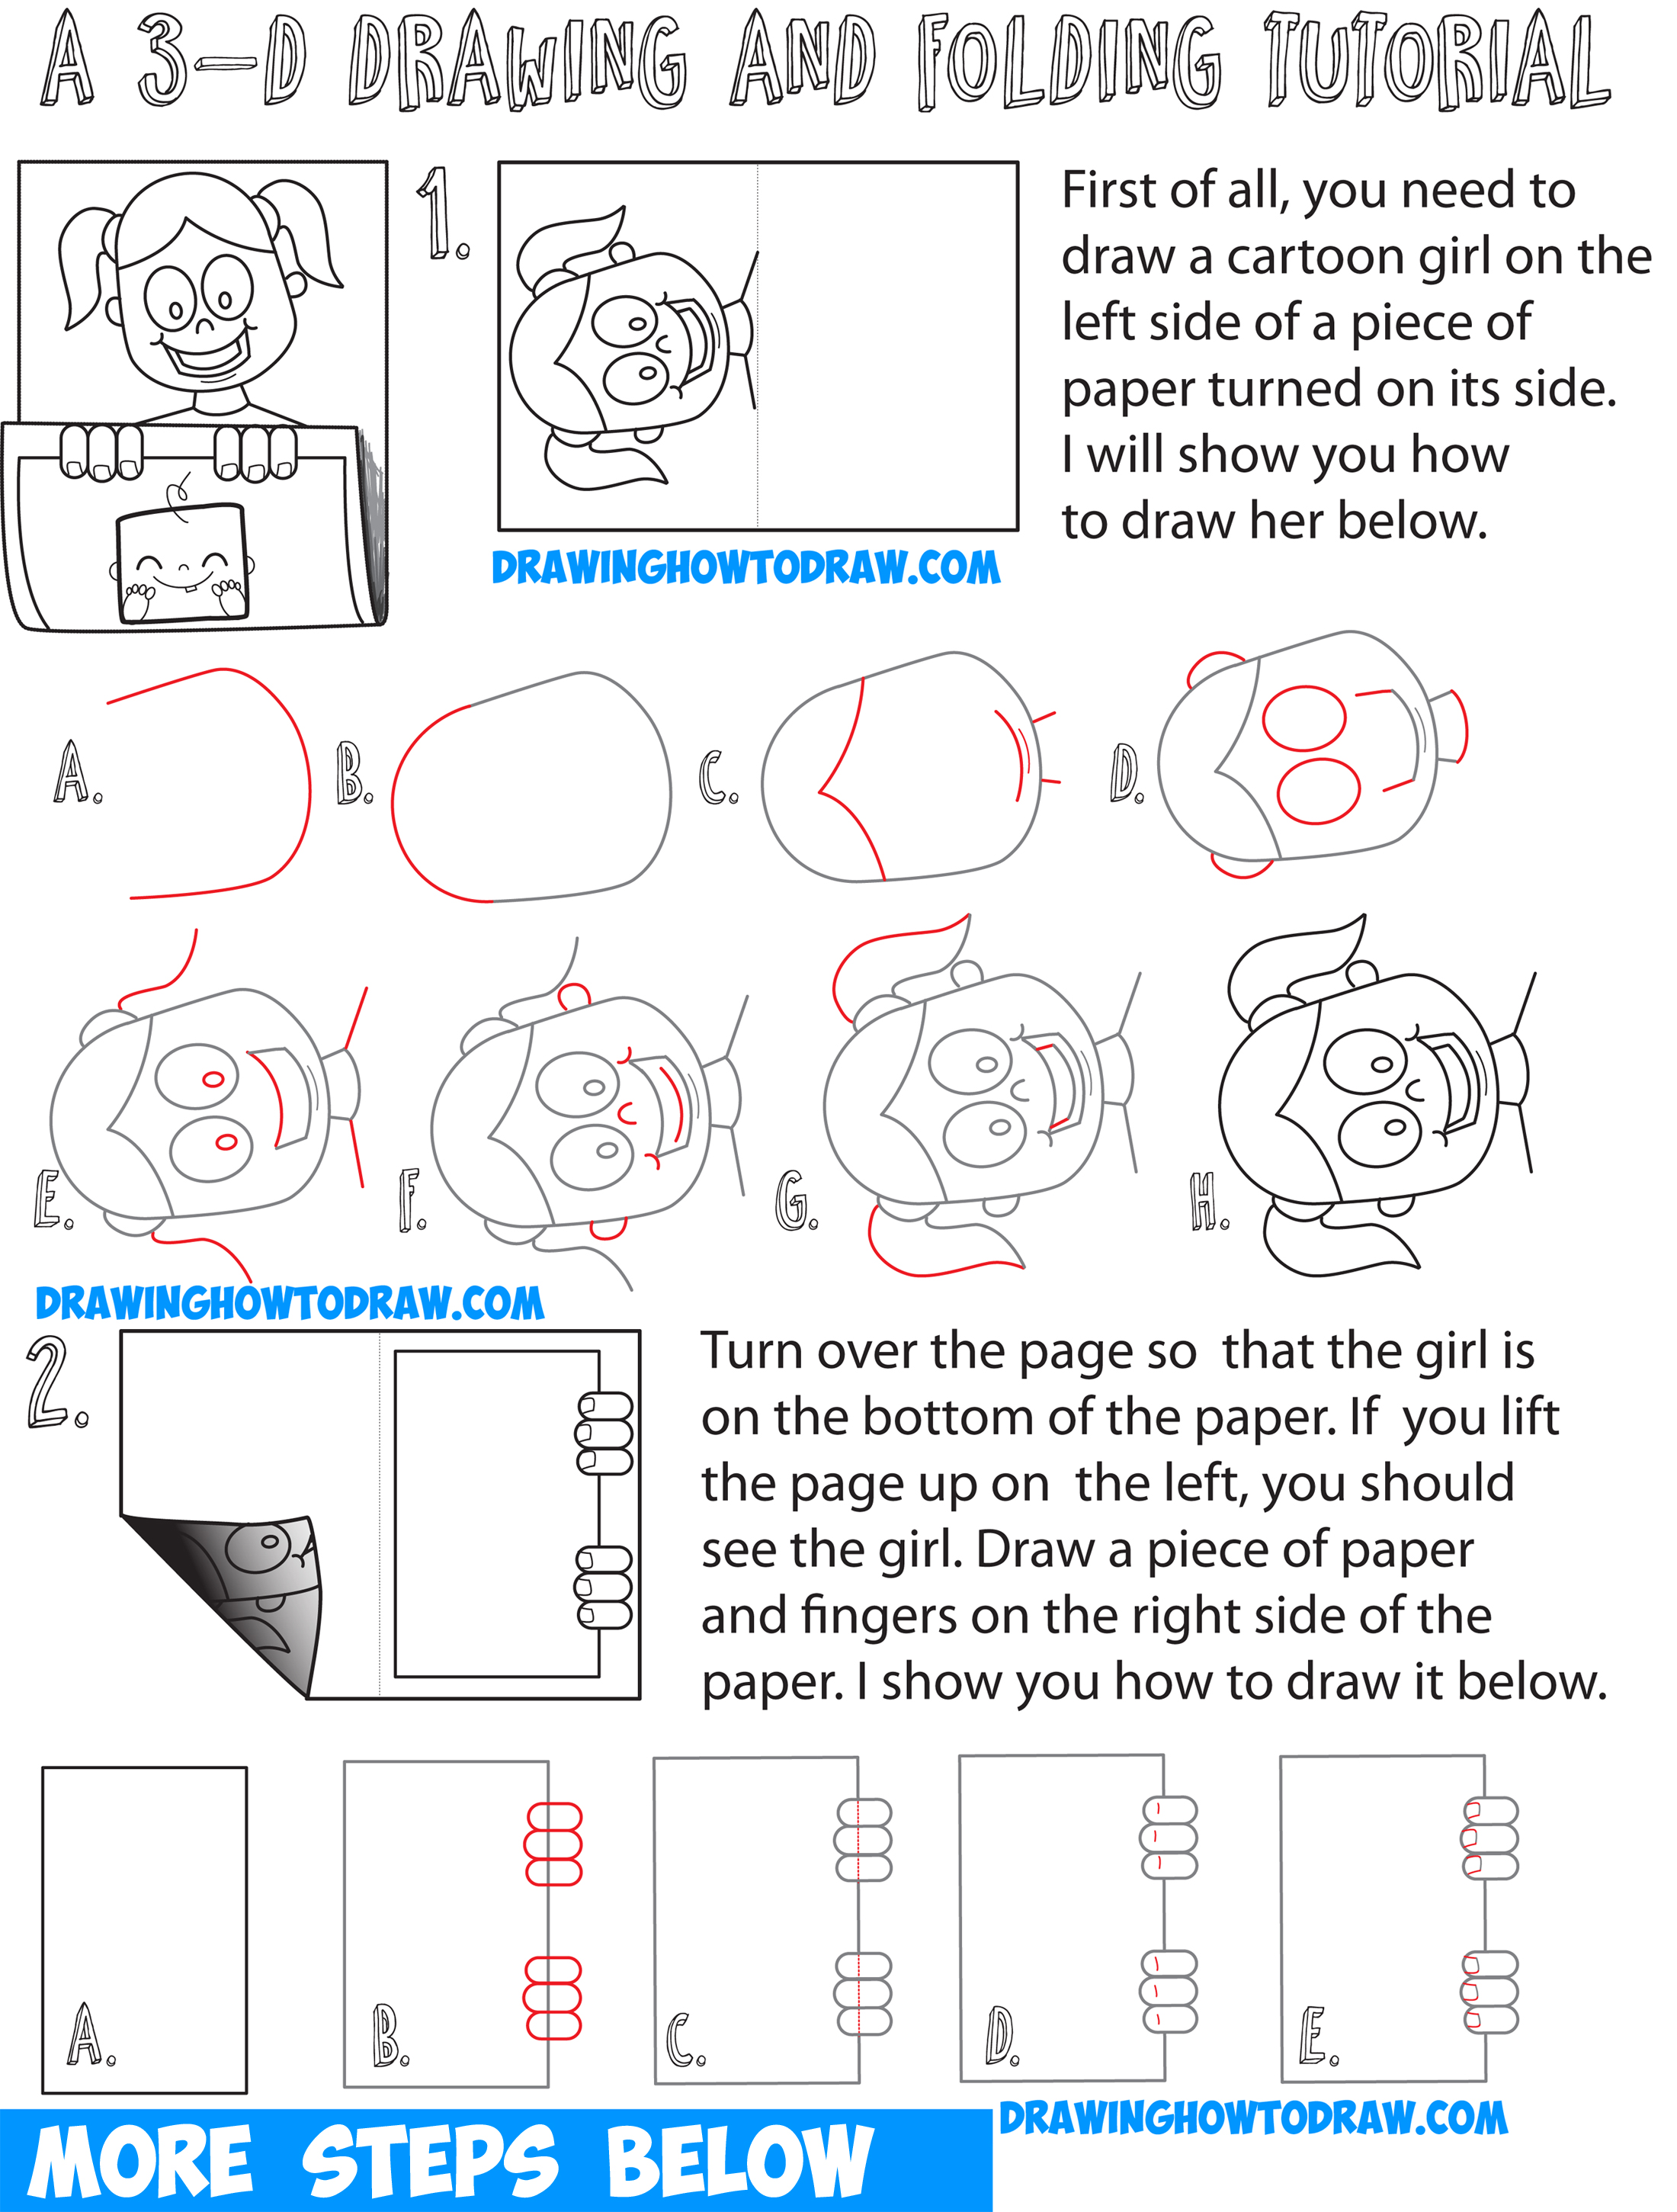 how to draw cartoon girl holding up art on piece of paper 3d paper folded